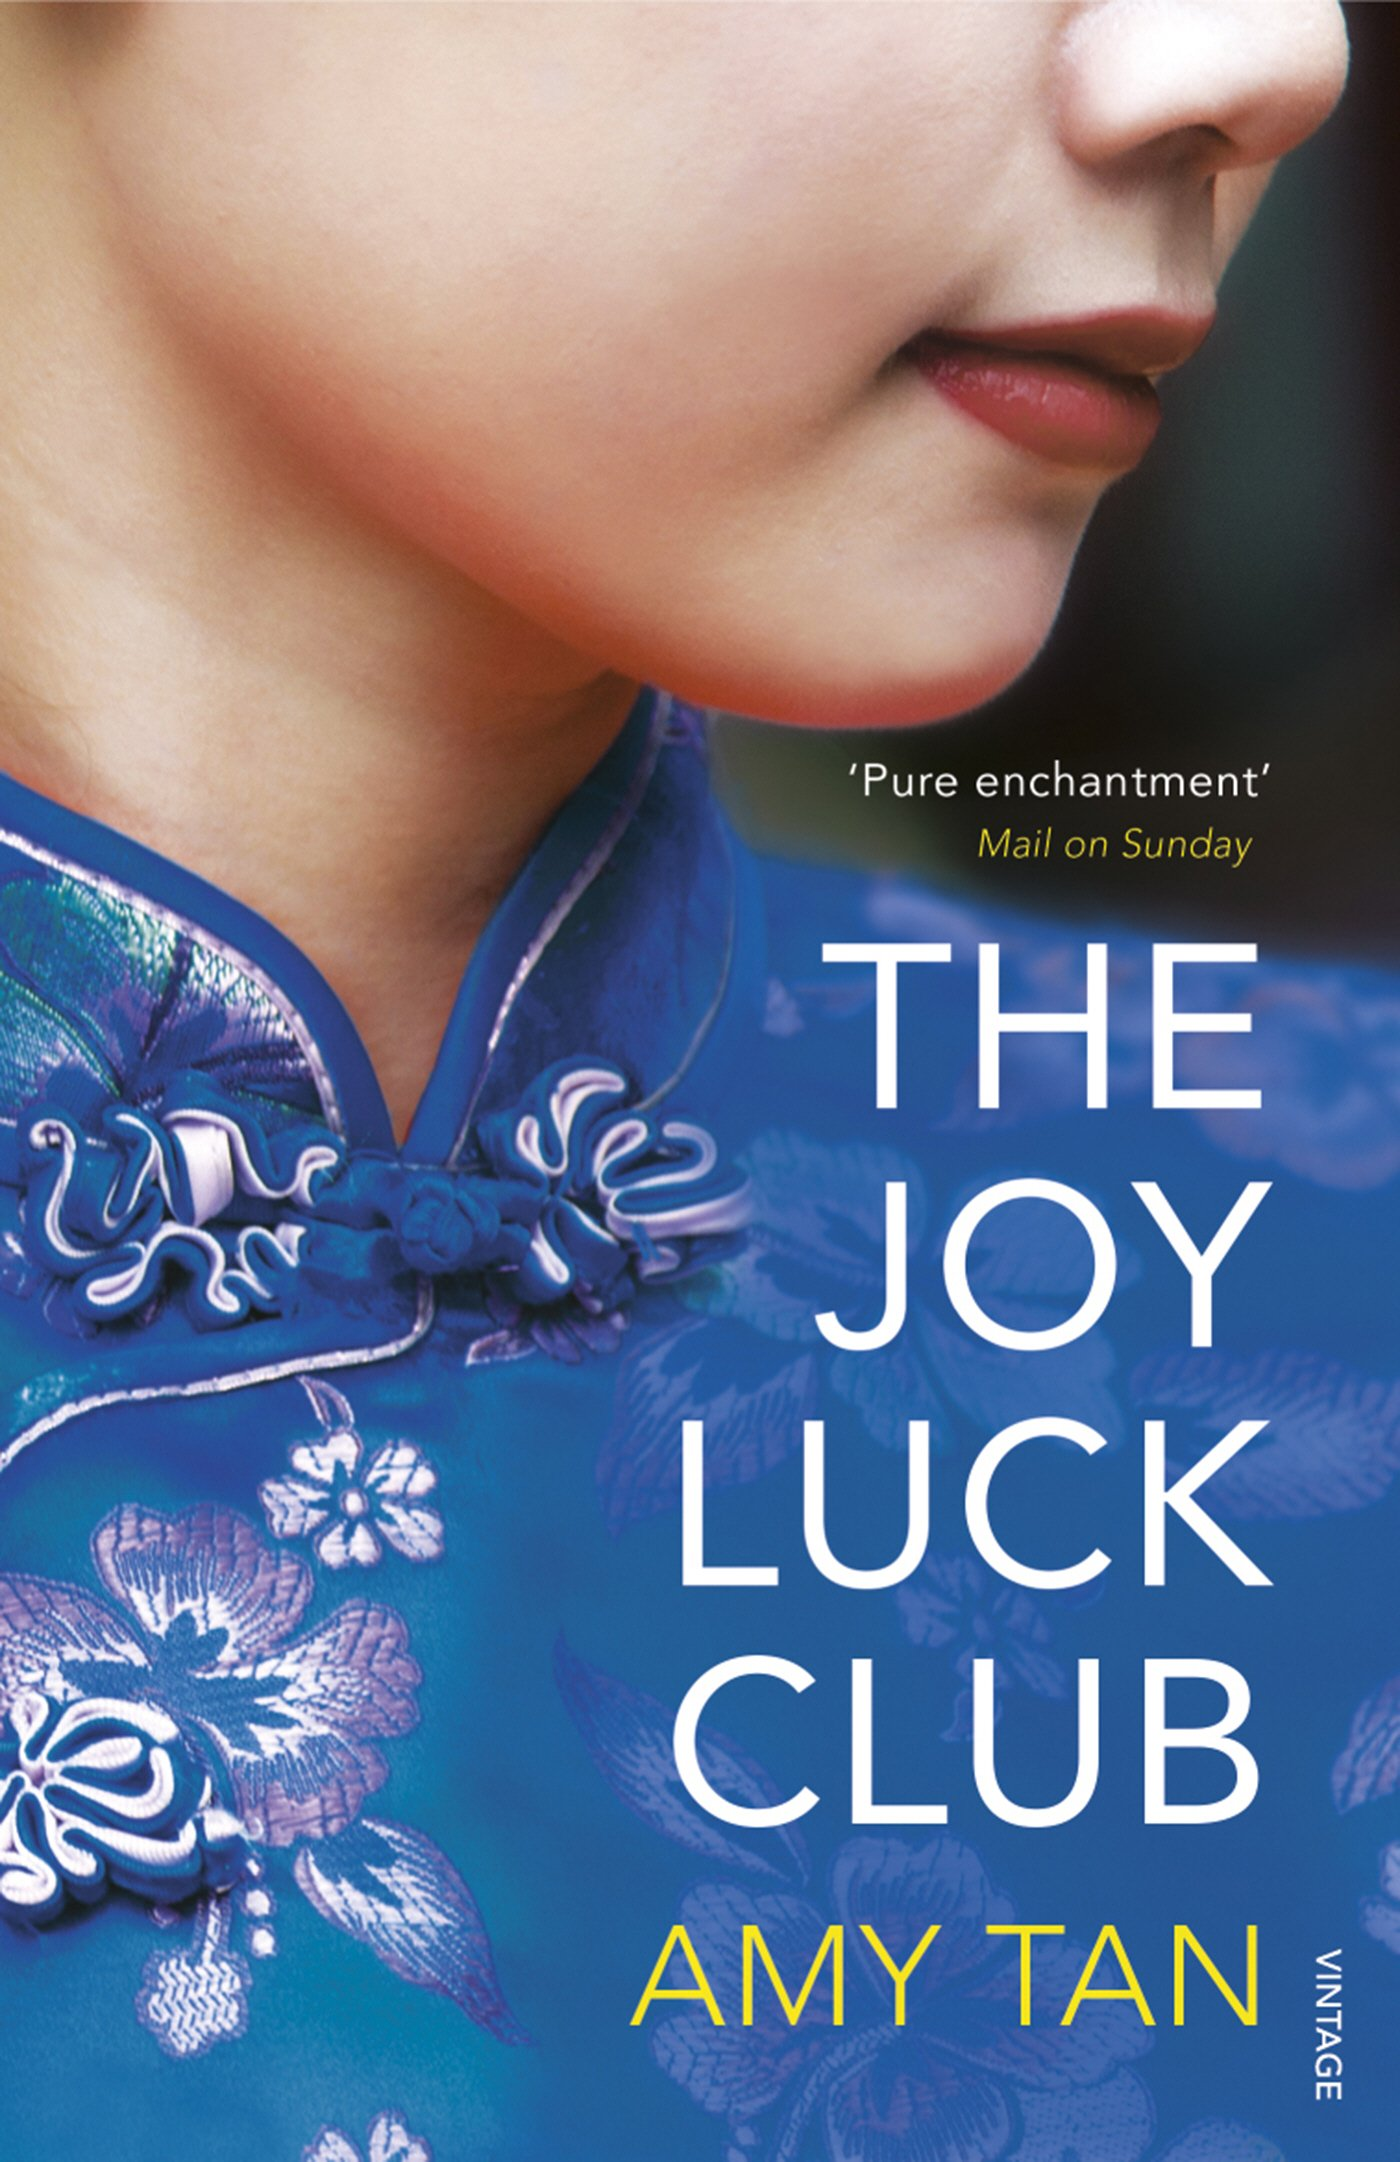 the joy luck club movie summary review the joy luck club joy luck  buy the joy luck club book online at low prices in the joy buy the joy